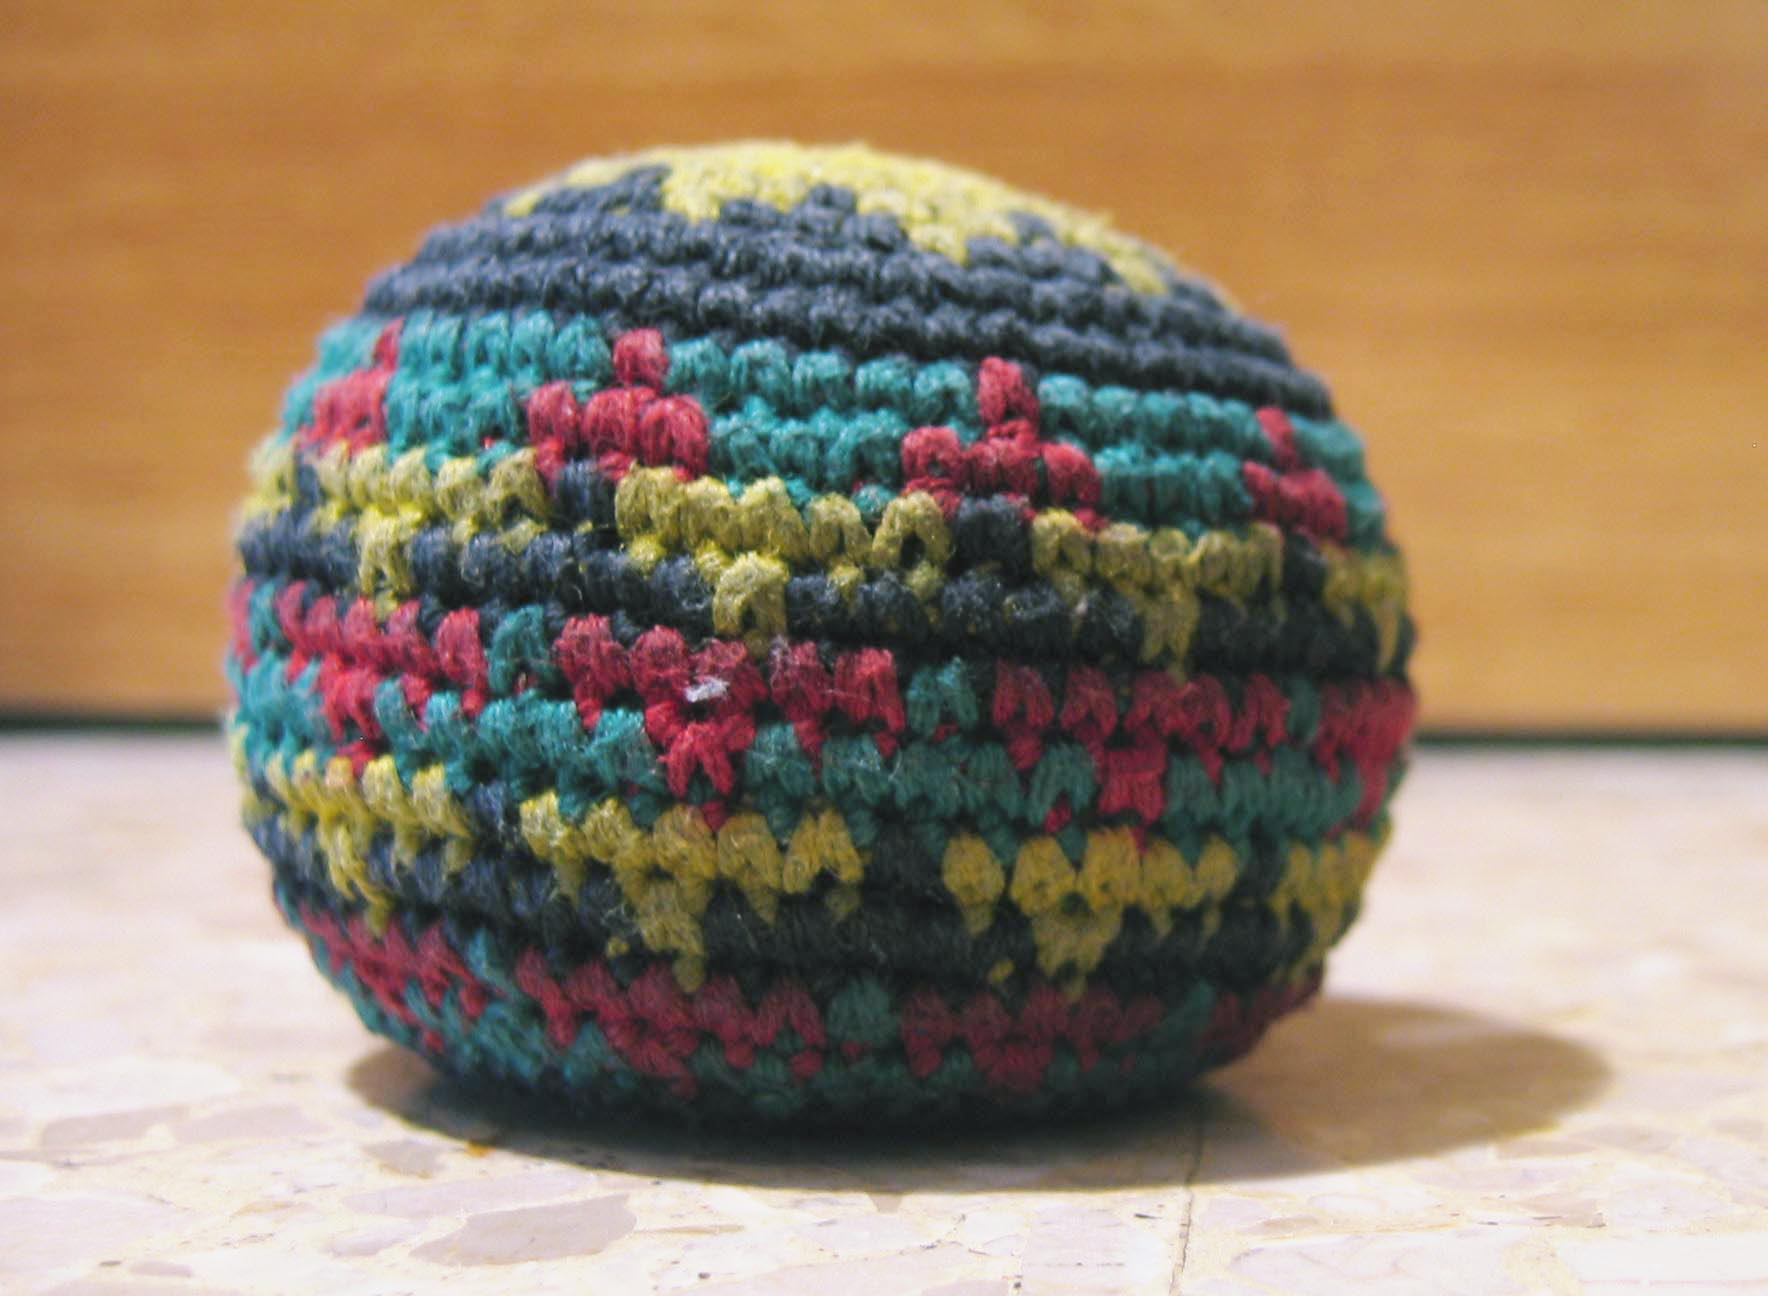 the footbag essay These philippines facts and statistics provide a good overview of the reality of both the footbag and the sports that use it are photo essays featured.